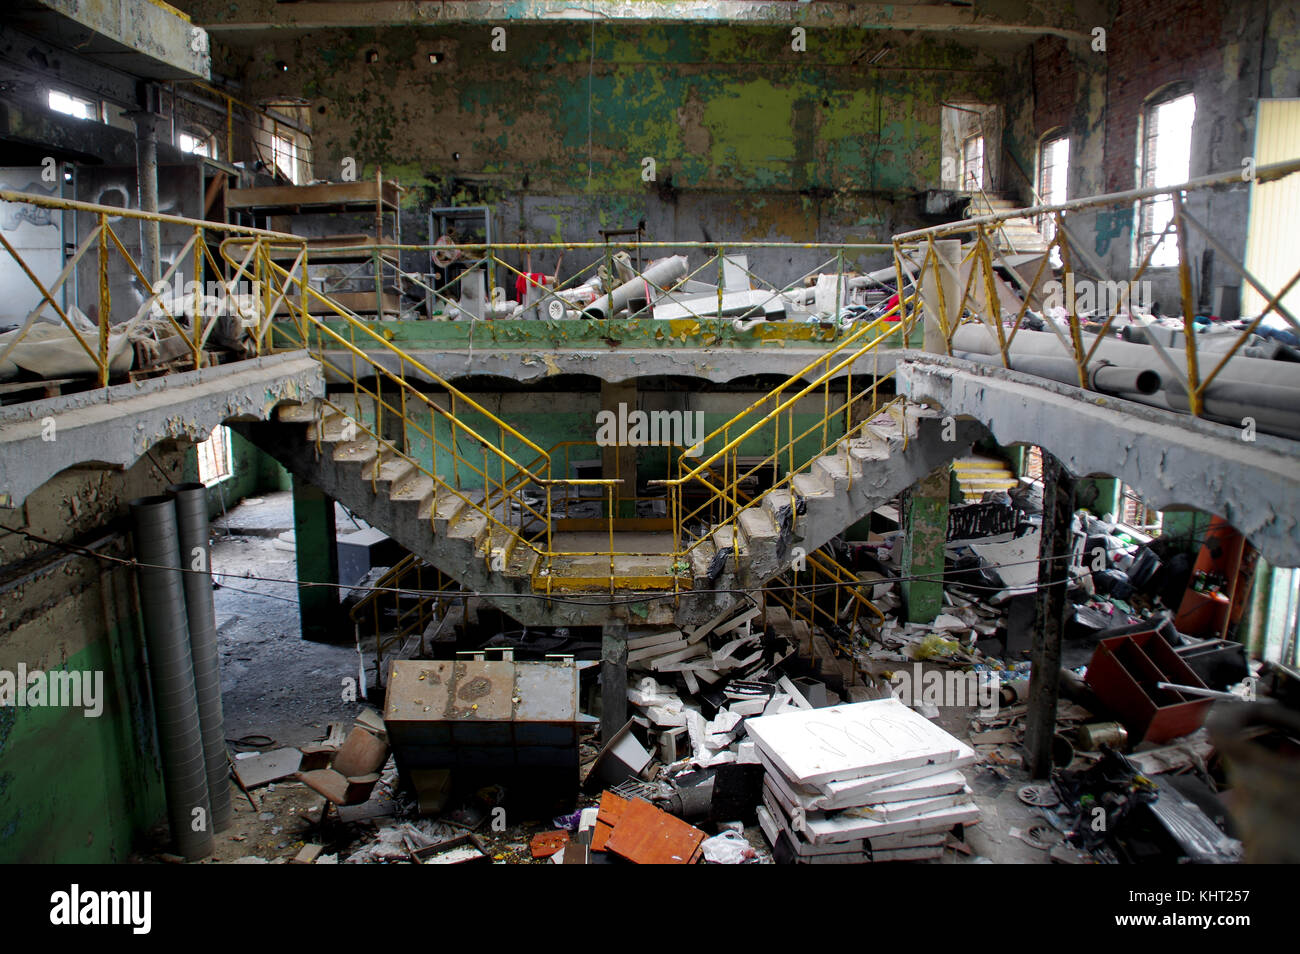 Mess and disorder in destroyed factory. Stairway in ruined industrial interior. - Stock Image